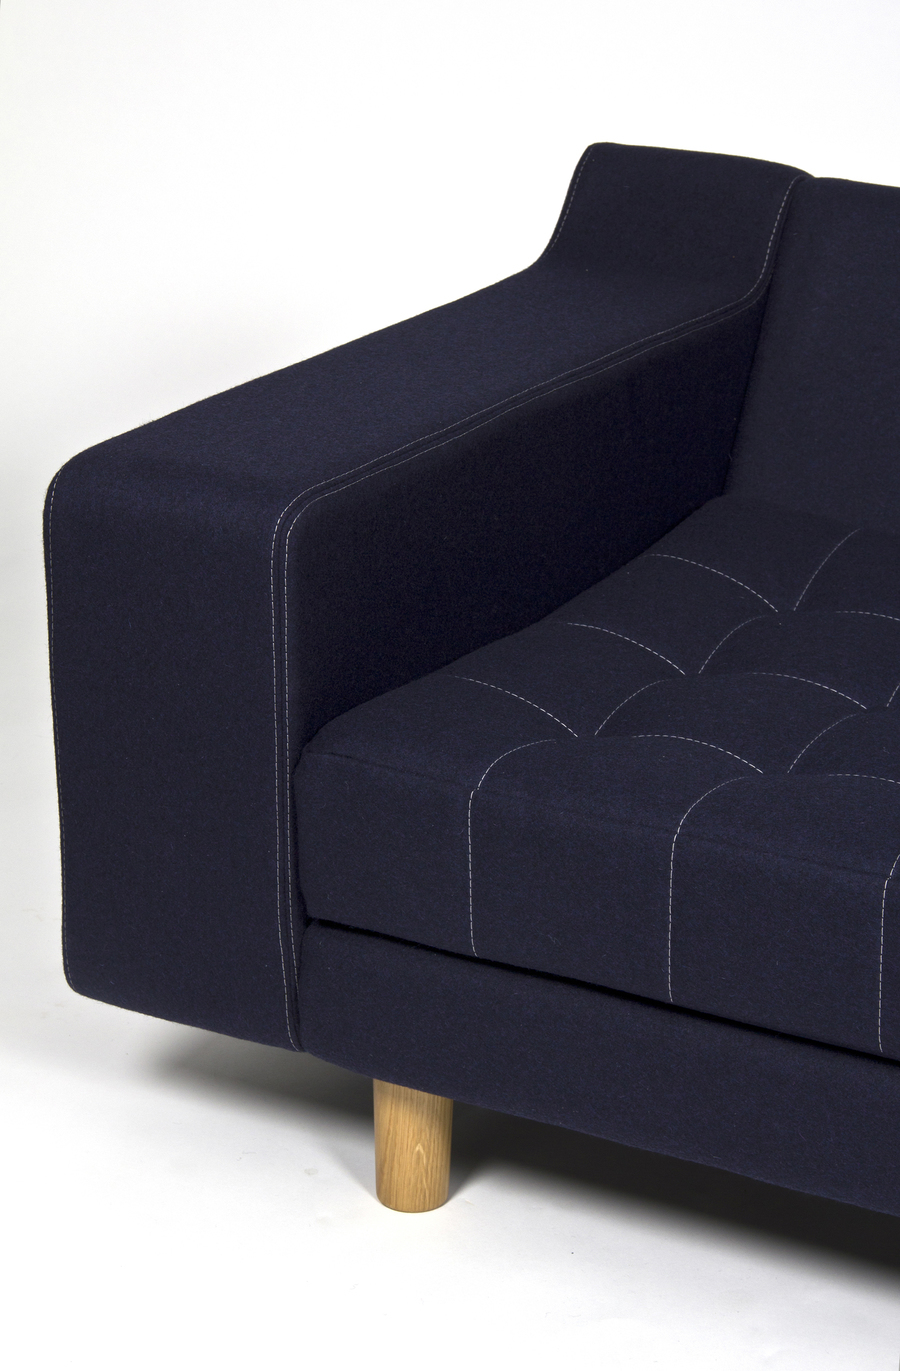 A close-up view from the front of the right side of a navy naughtone Portion Sofa with solid walnut legs and white stitching.